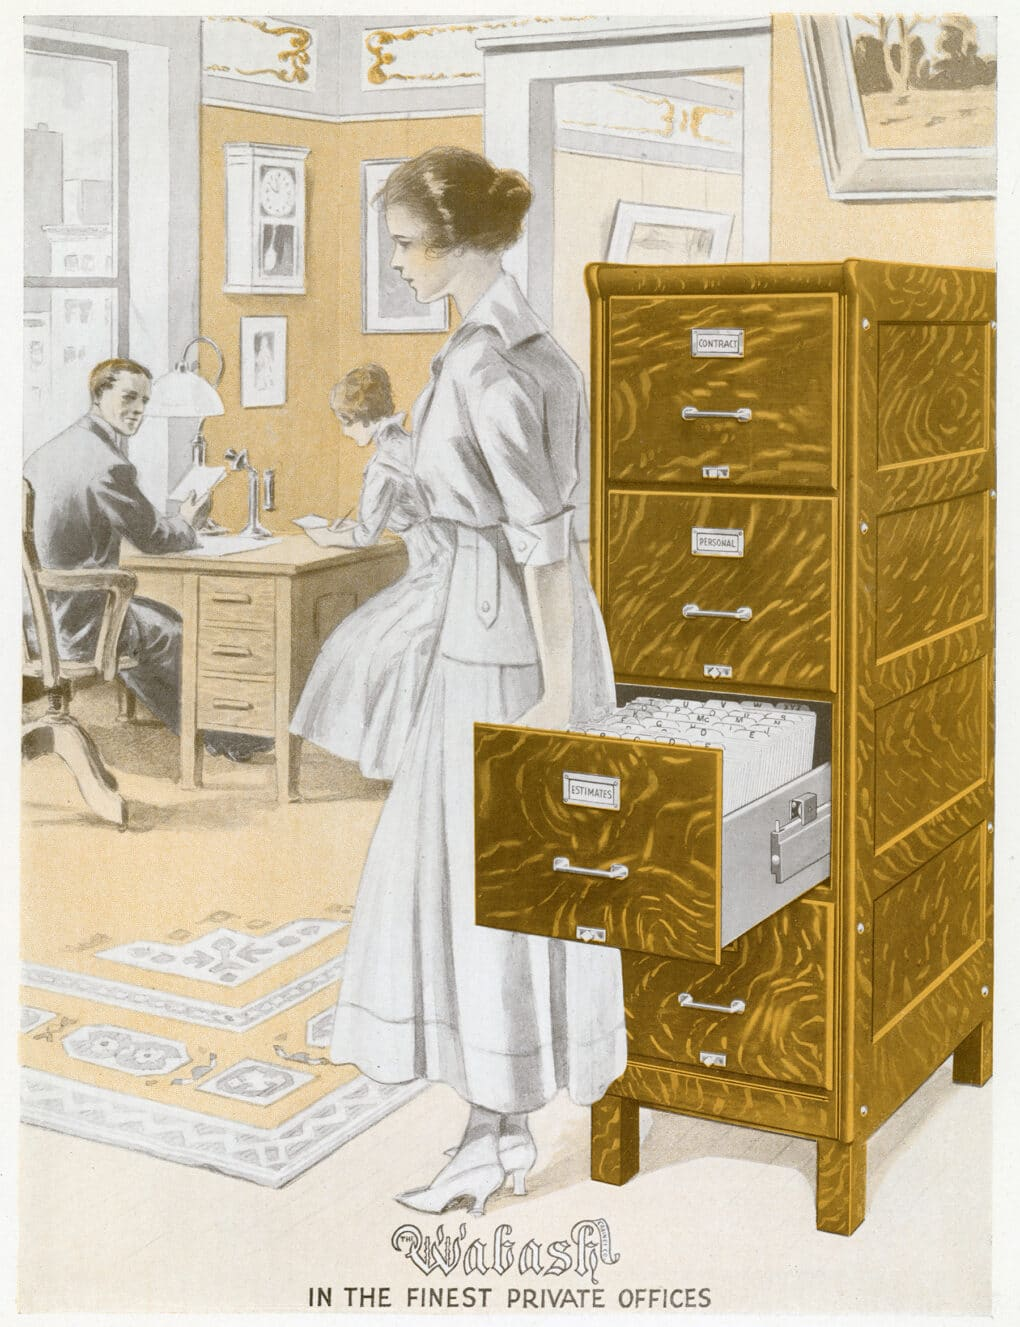 From the catalog of the Wabash Filing Cabinet Co., 1917.